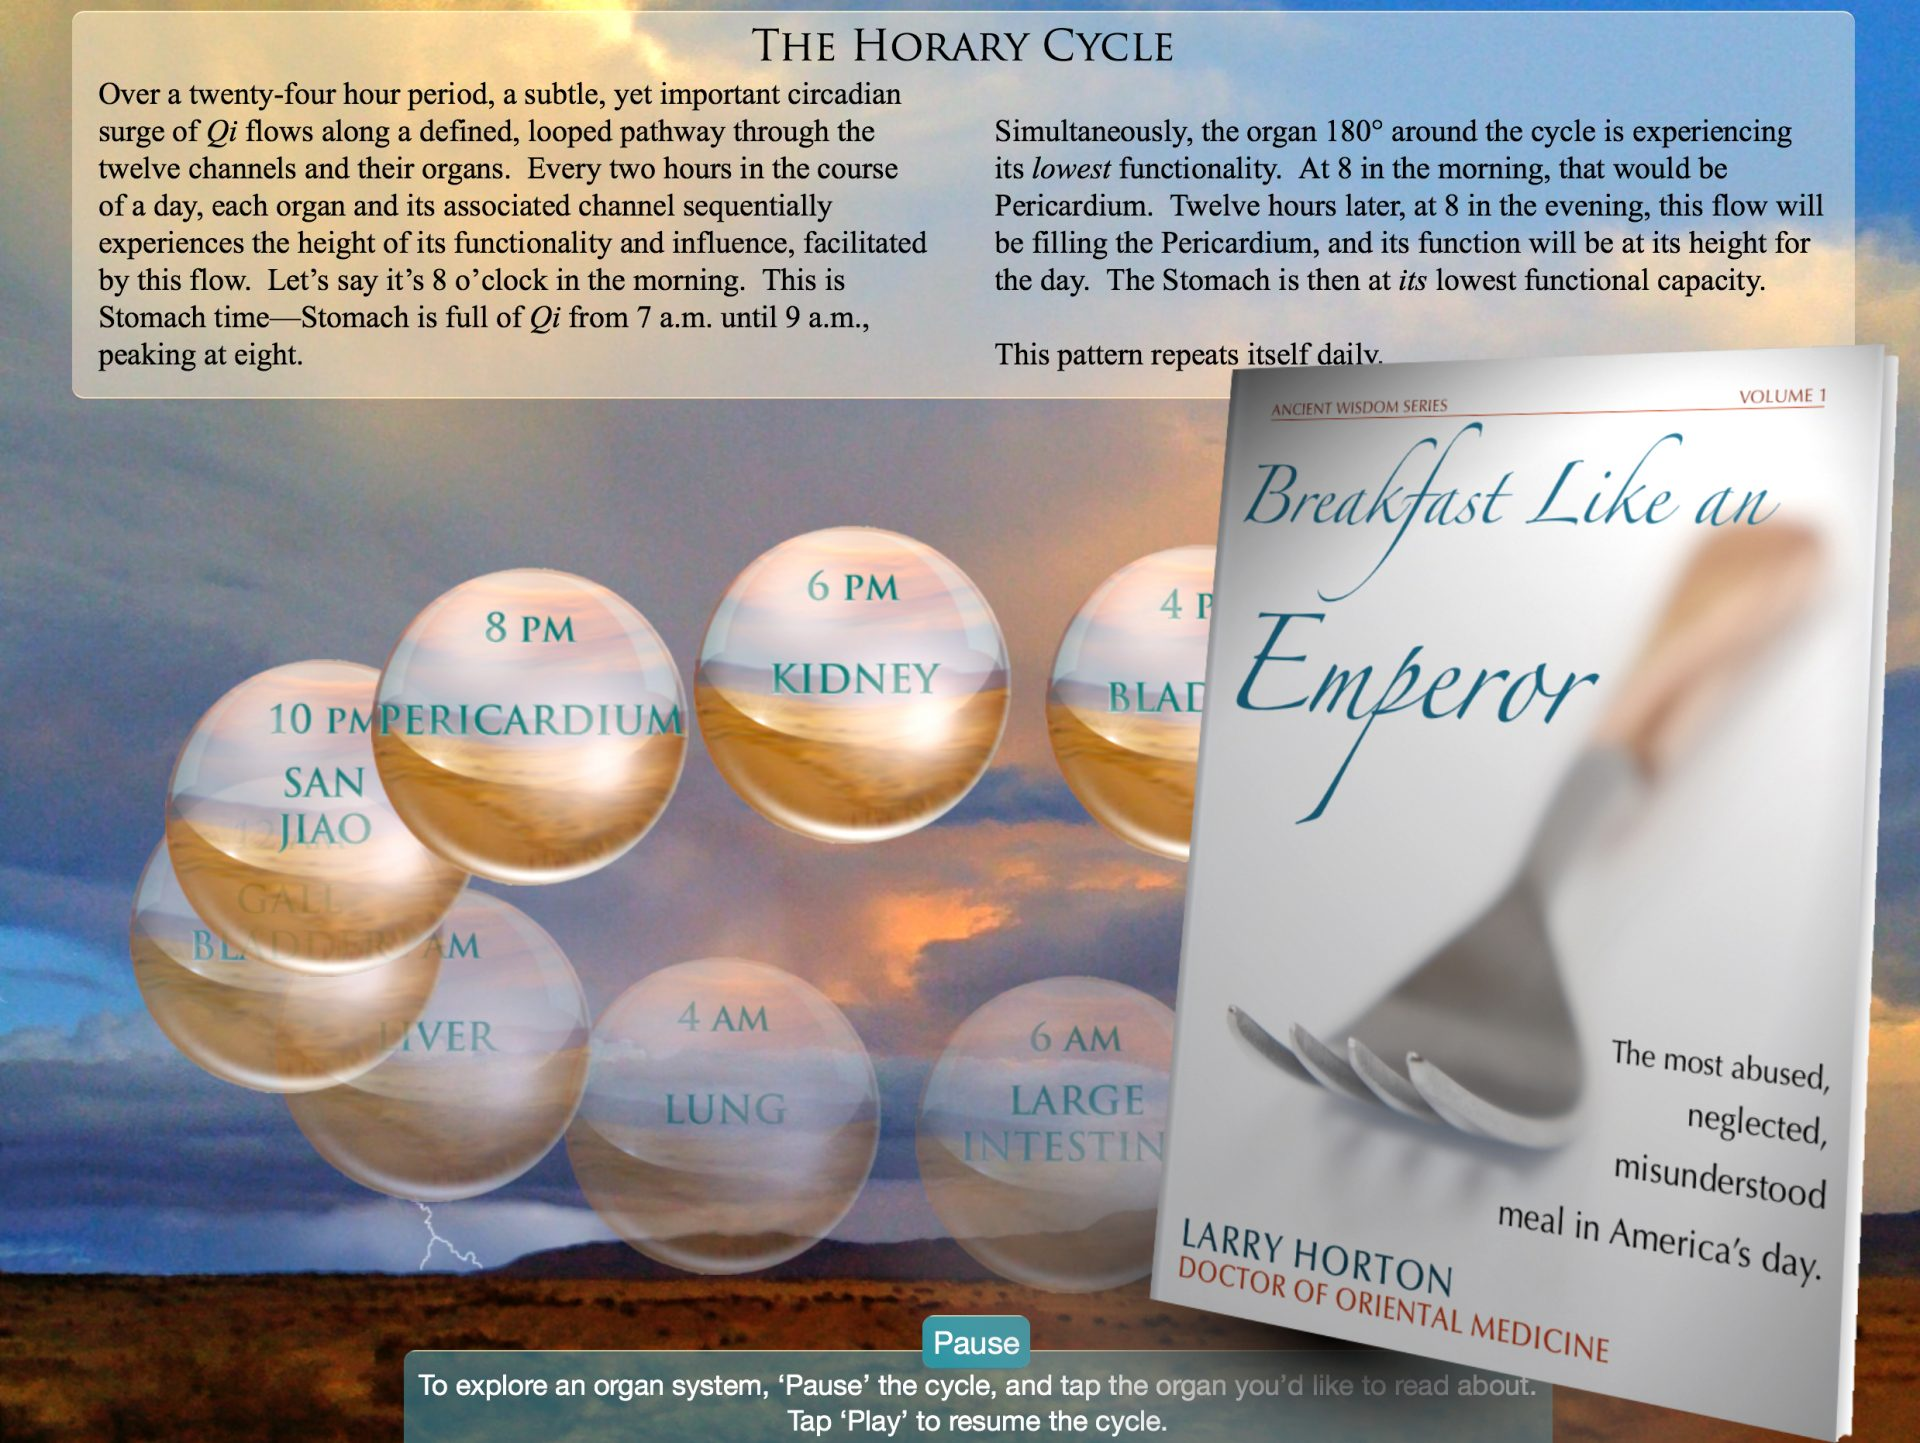 The book cover of Breakfast Like an Emperor is pictured against a background of an image from the Horary Cycle animation, which includes twelve translucent globes representing each of the twelve organs and channels in the body. The globes are circling in a precise order, at regular intervals, on a well-defined orbit.